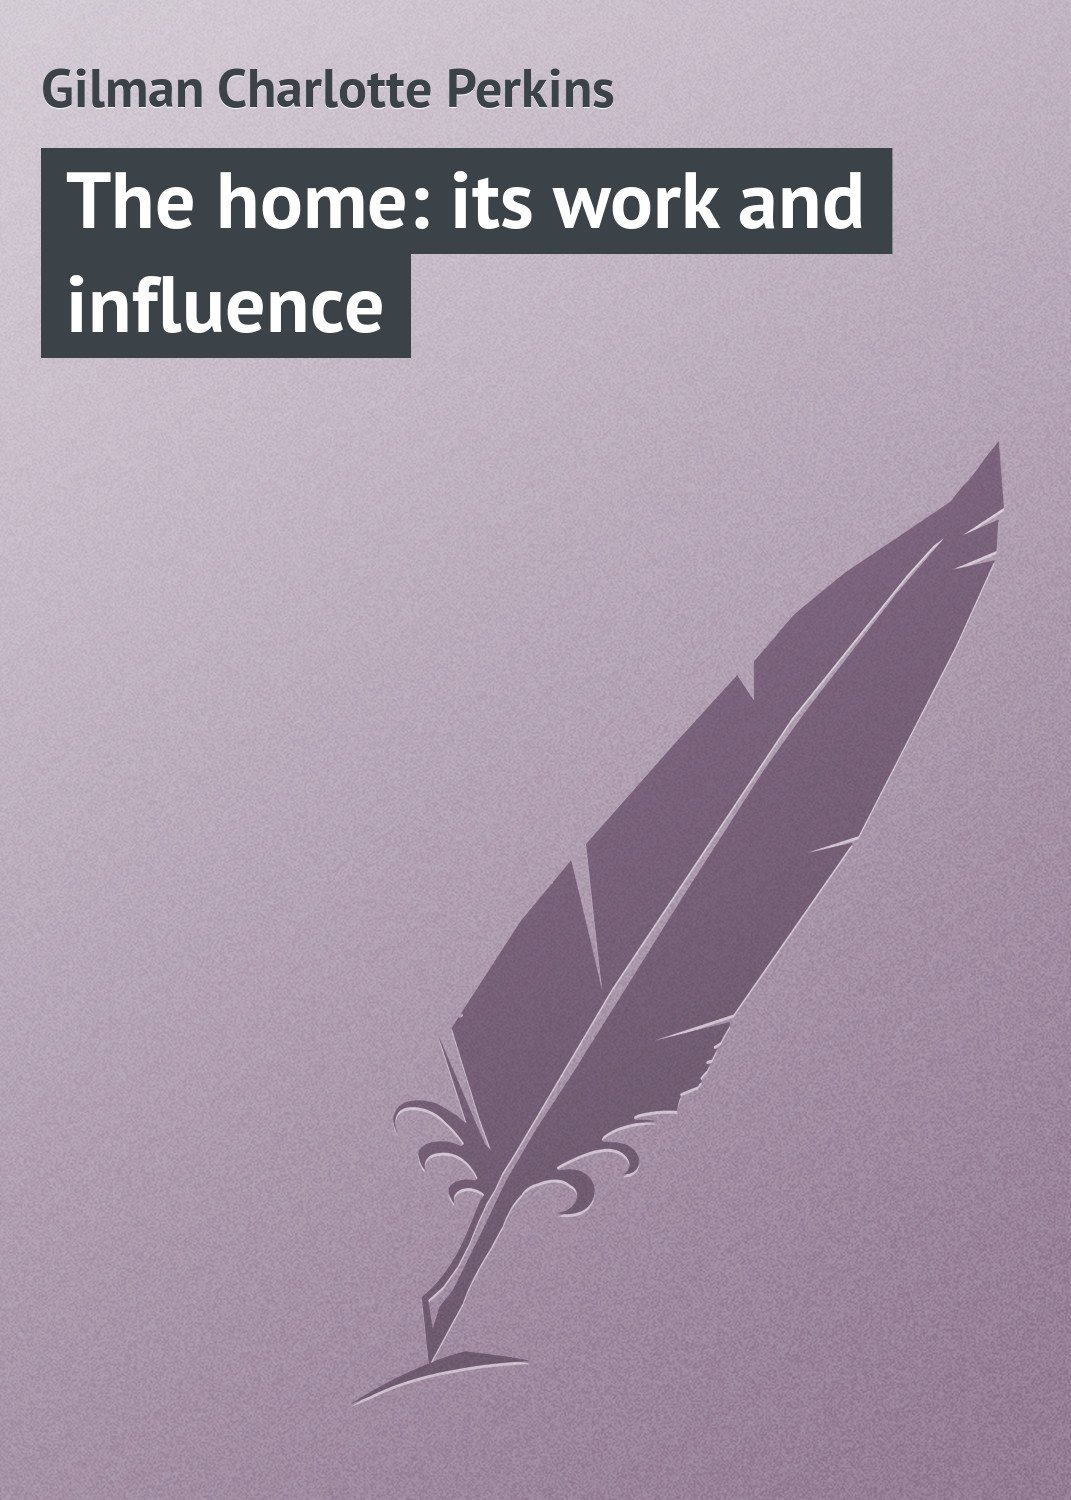 Gilman Charlotte Perkins The home: its work and influence bad influence